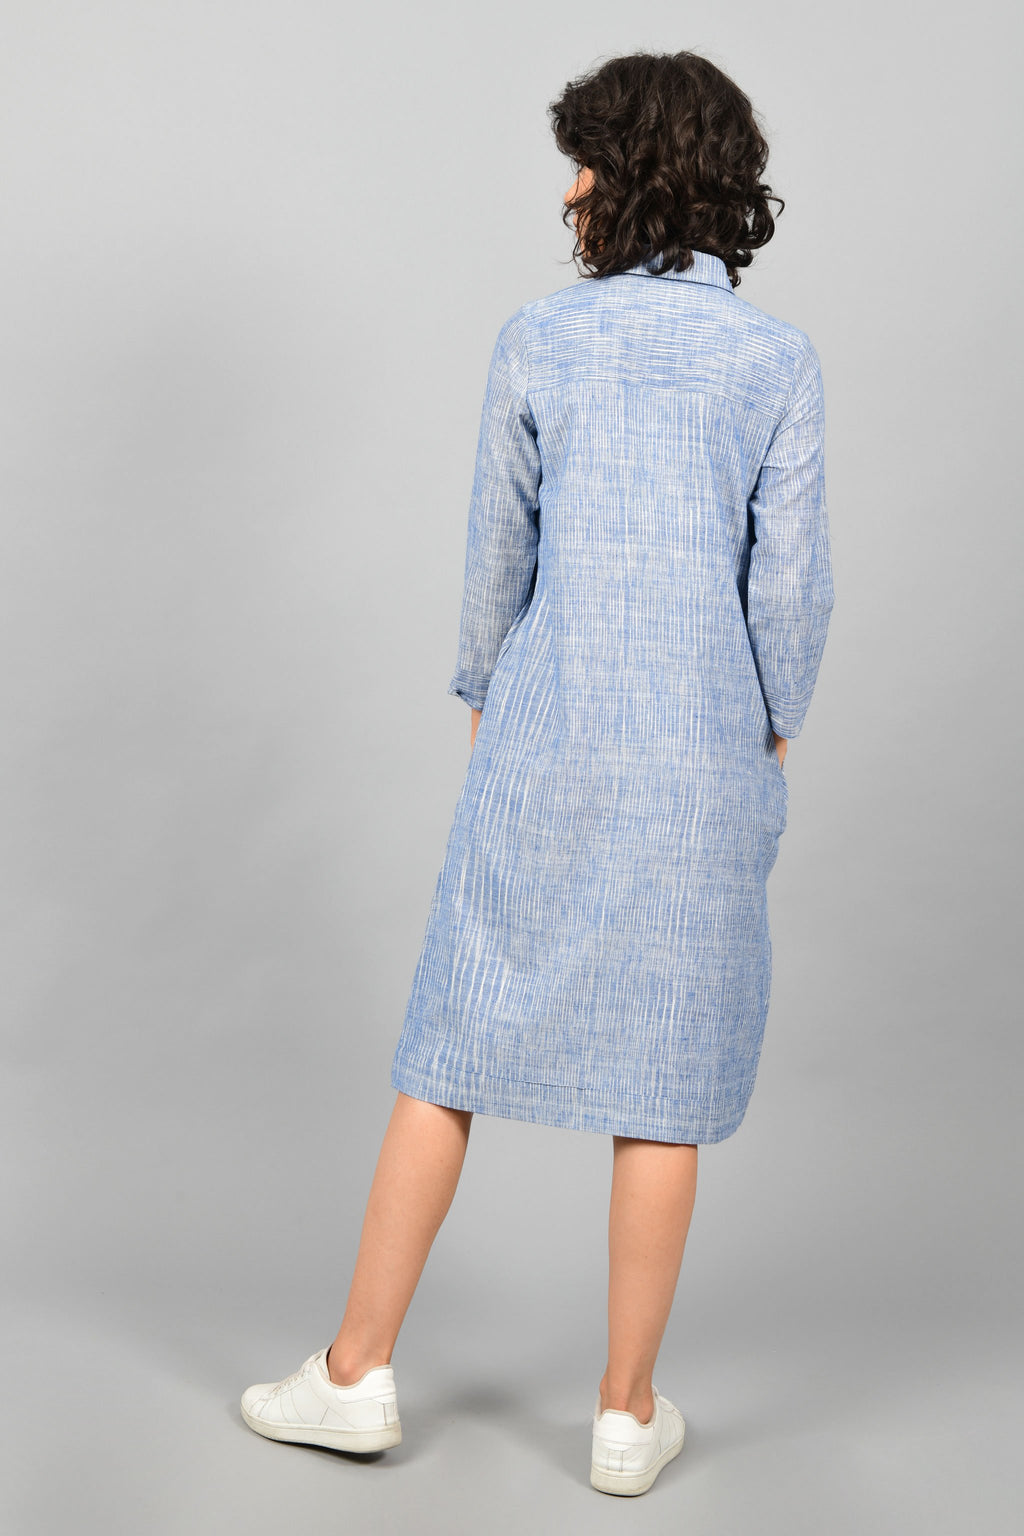 back of a model wearing a shirt dress in blue and white space dyed fine handspun handwoven khadi cotton from west bengal